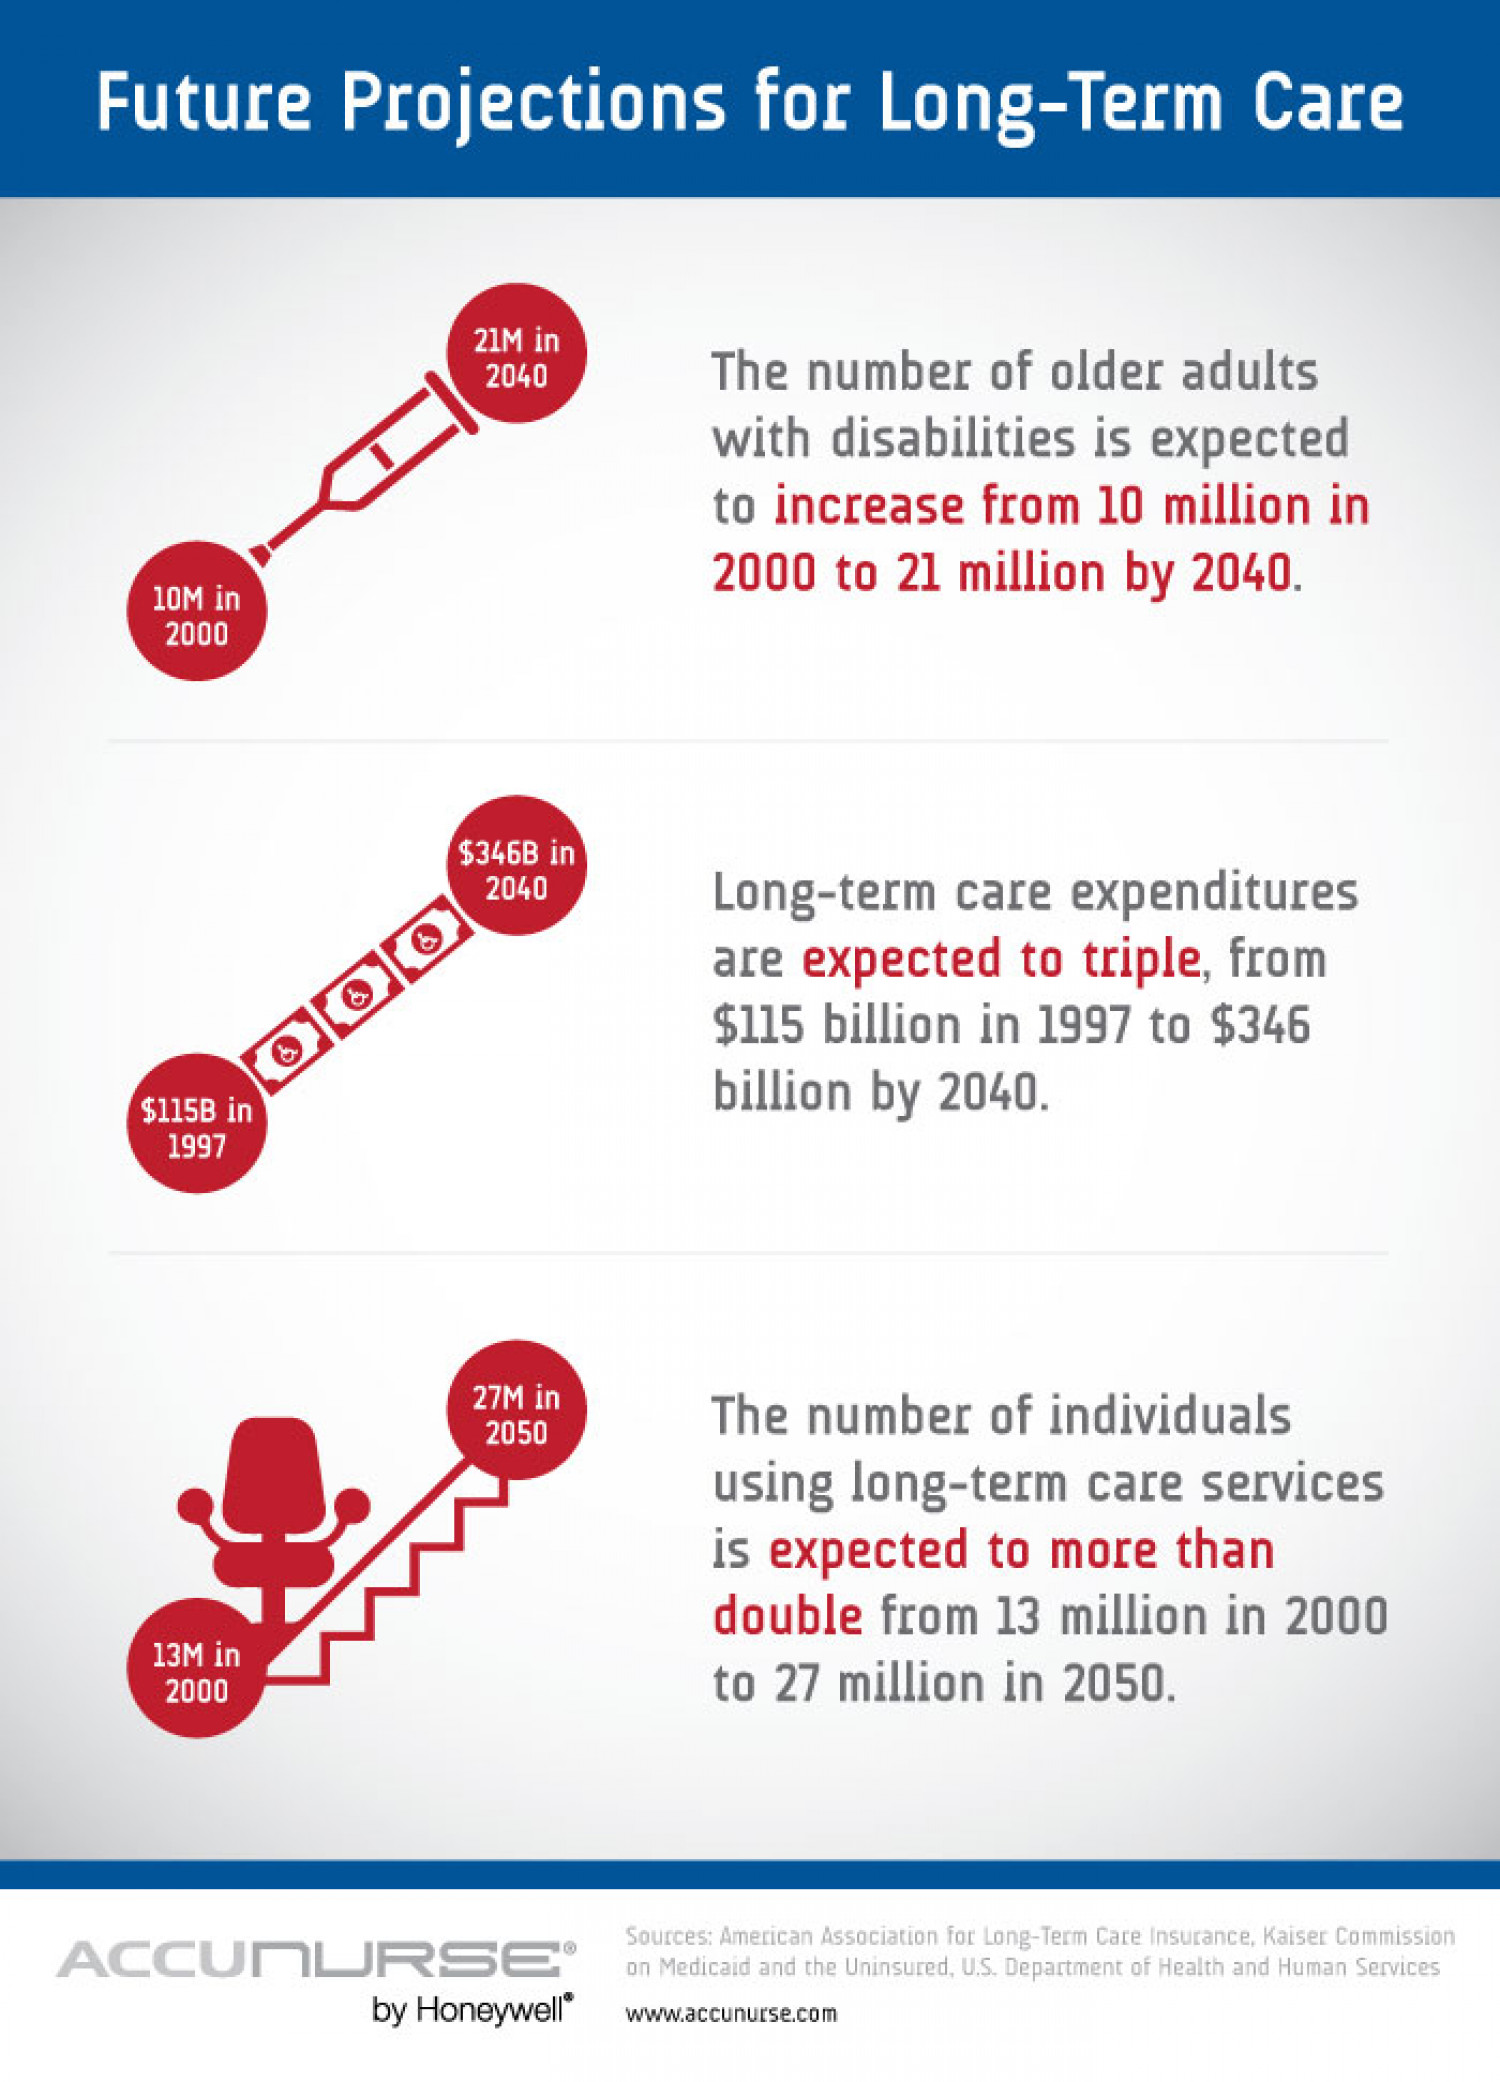 Future Projections for Long-Term Care Infographic